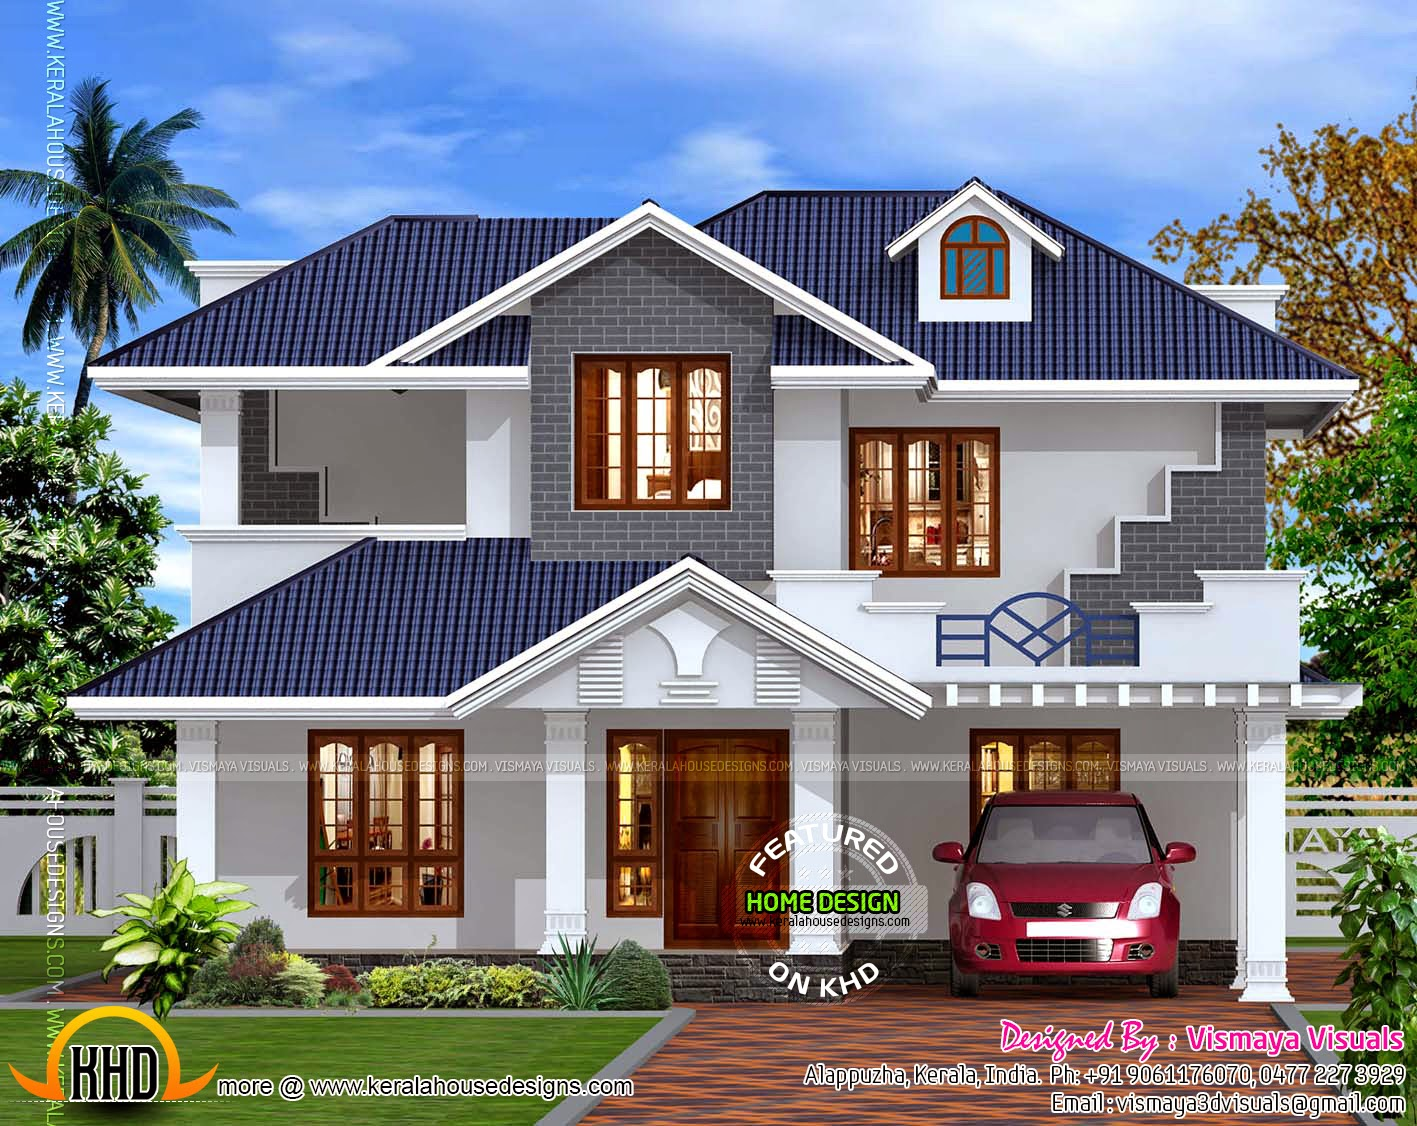 Kerala style villa exterior kerala home design and floor for Home exterior design ideas photos